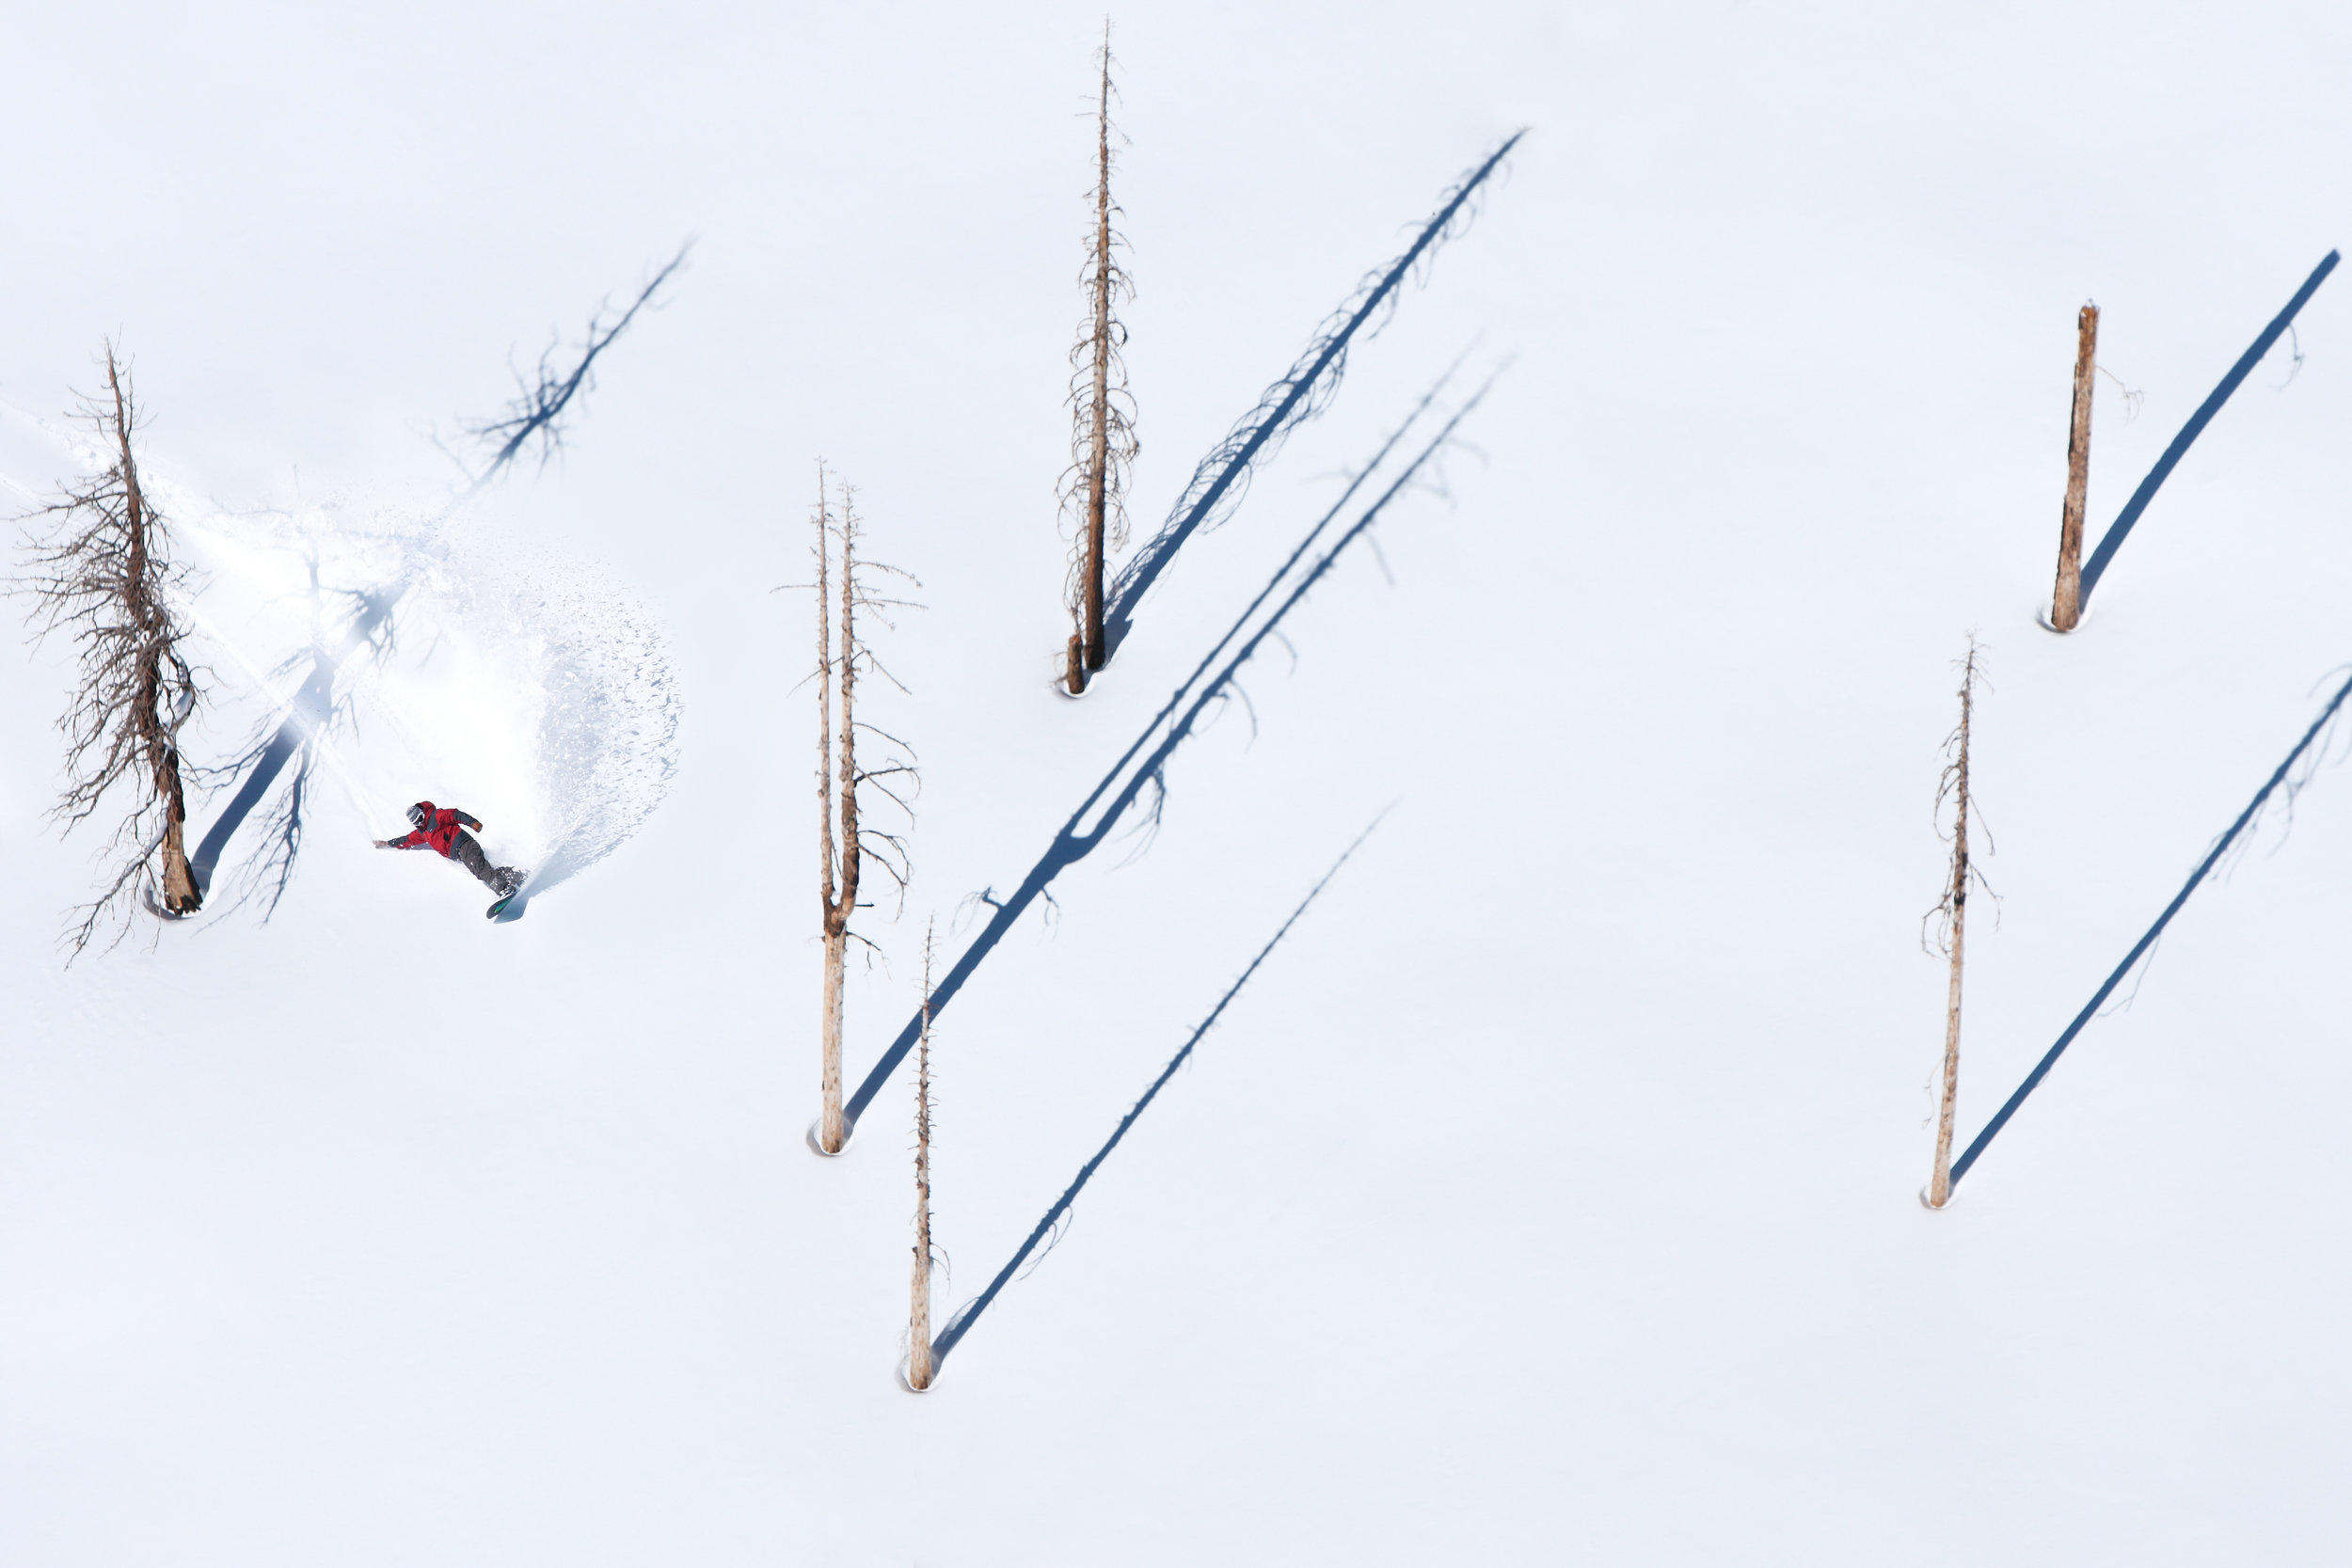 Mikey Wier — Heavenly Mountain Resort, Lake Tahoe, California